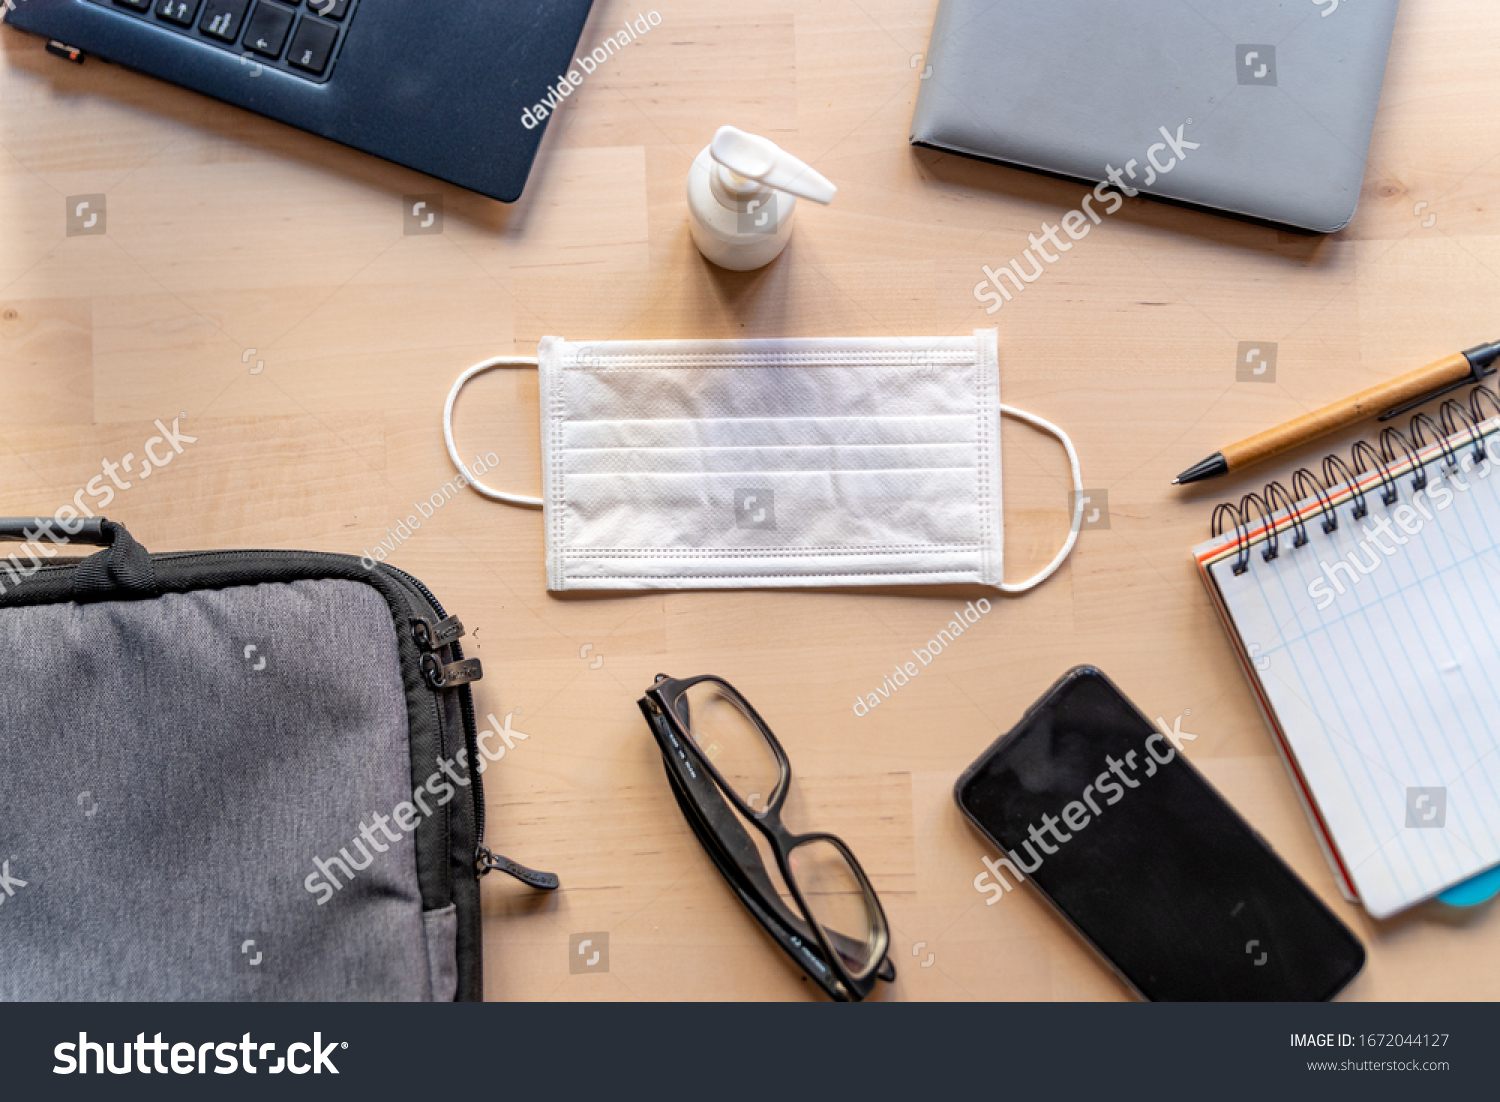 remote work kit on wooden office desk with hand sanitizer and face mask, a solution against the spread of corona virus for quarantined employees #1672044127